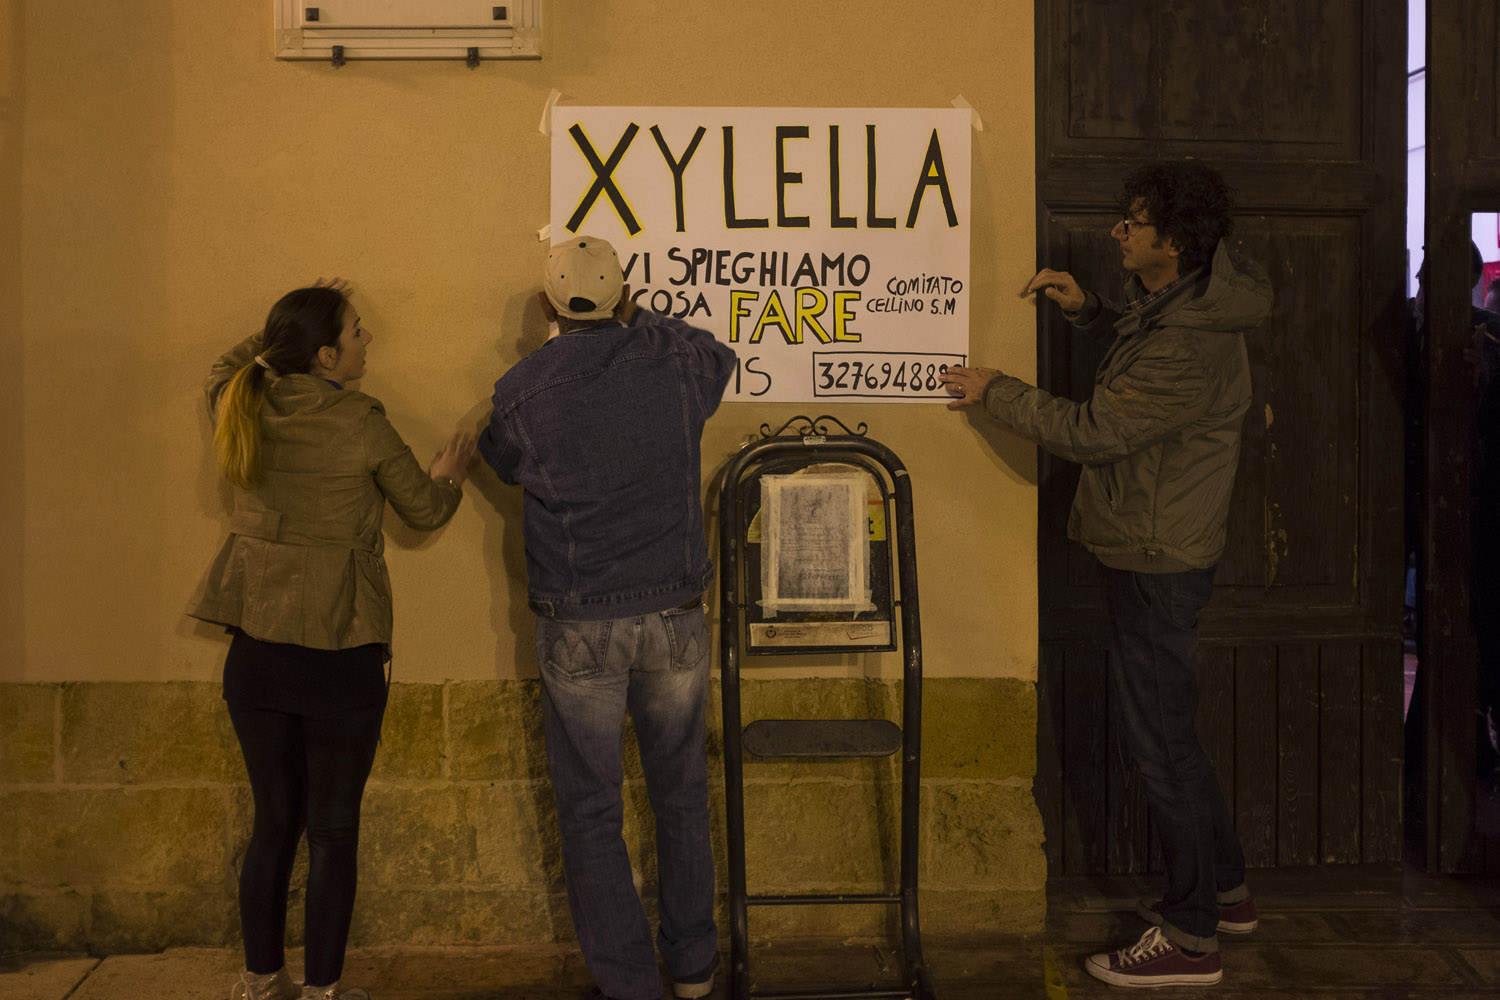 "Activists preparing for a public meeting titled ""Xylella, we explain you what to do"" in Cellino San Marco, meant to mobilize local farmers against the authorities' plans to eradicate olive trees in the area in order to contain the Xylella fastidiosa outbreak, and support them in their appeals against the eradication orders. (2015)"